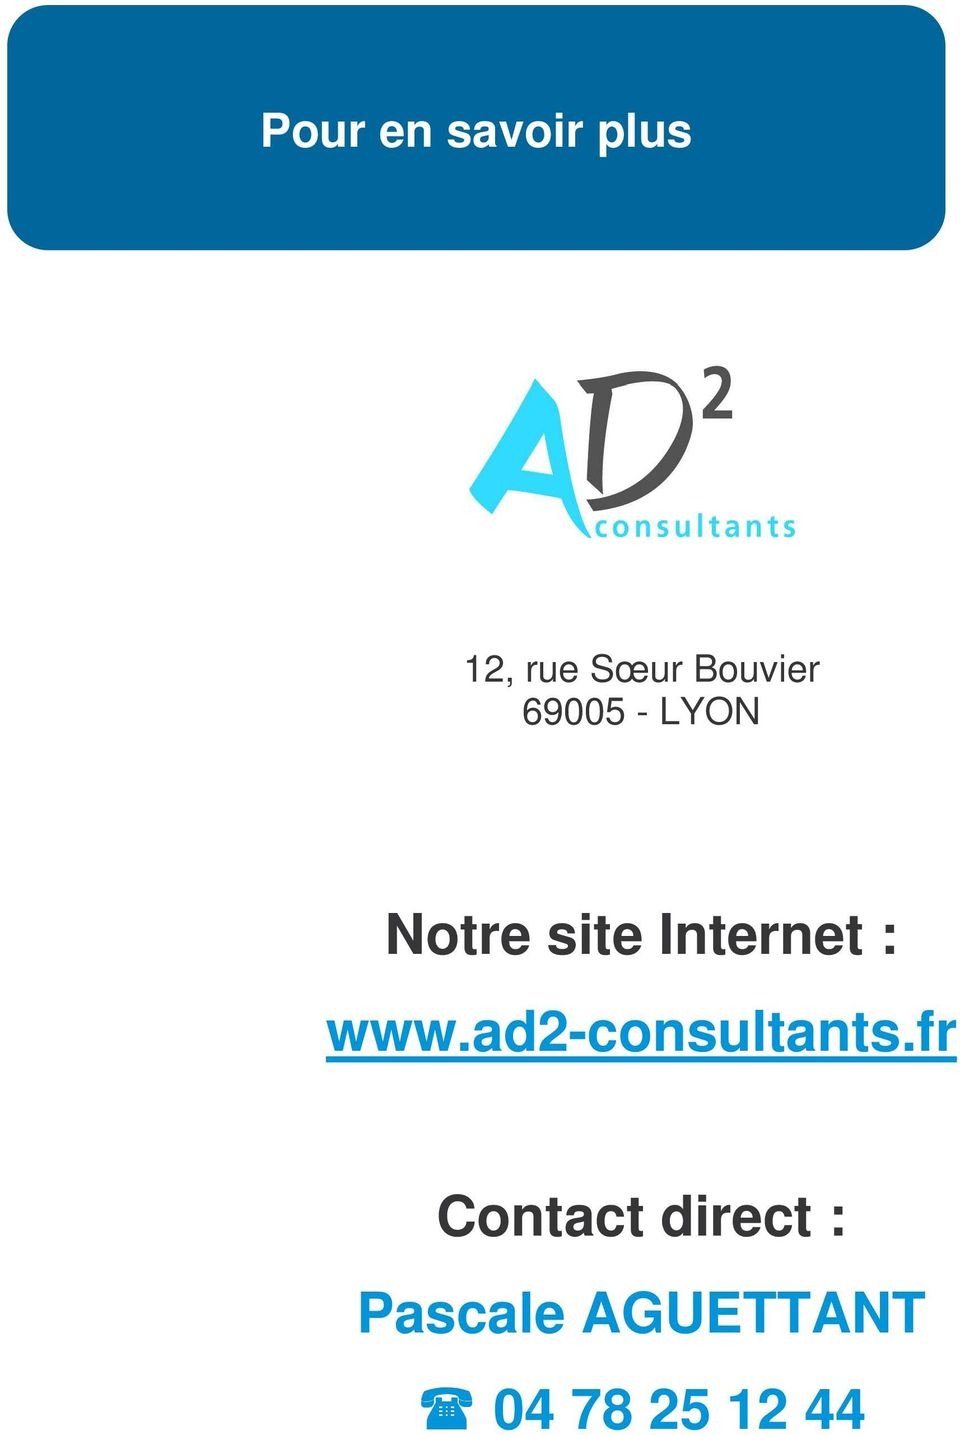 Internet : www.ad2-consultants.